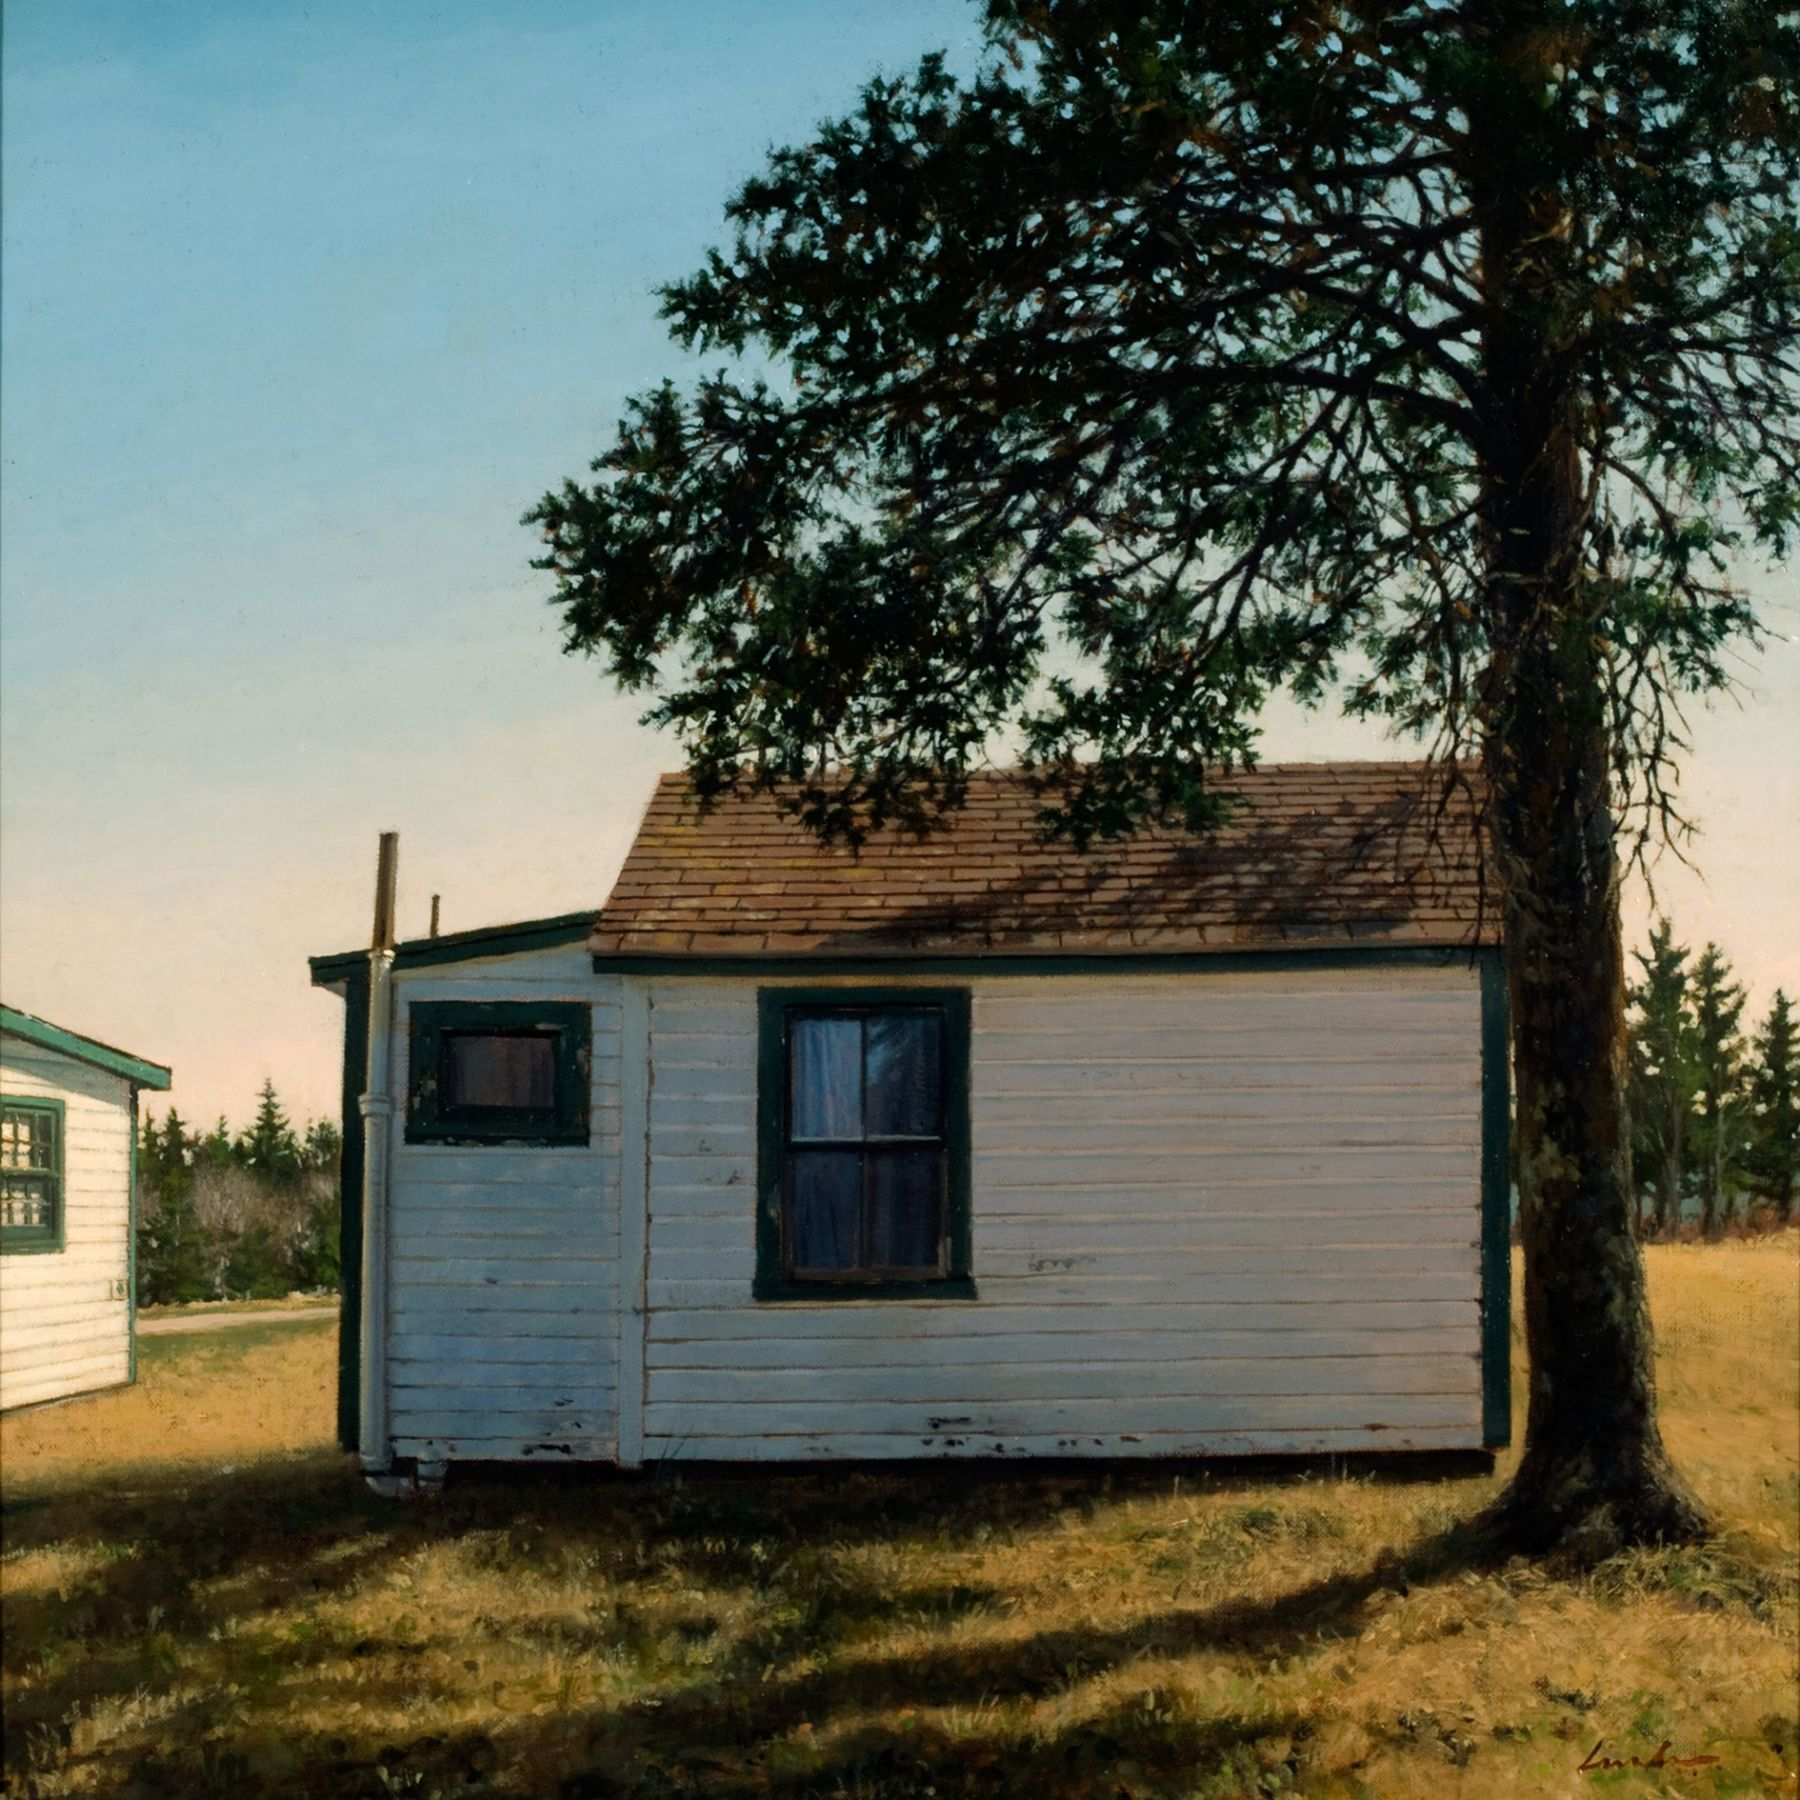 Linden Frederick, Cabin 5 (SOLD), 2007, oil on panel, 12 1/4 x 12 1/4 inches